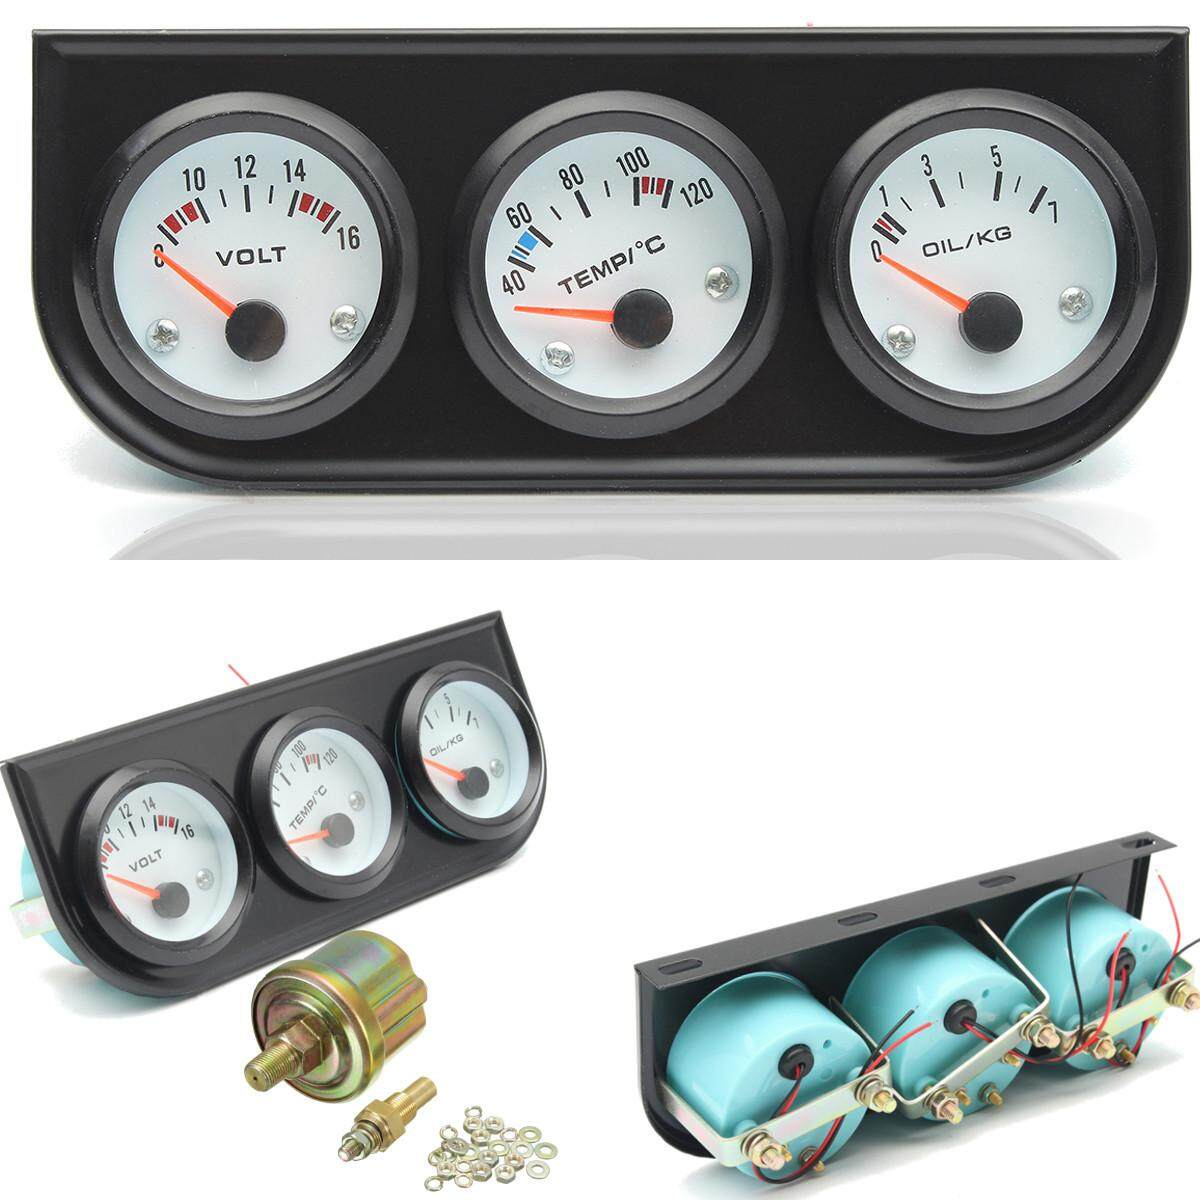 Auto Replacement Parts Car 4 In 1 Lcd Digital Display Voltmeter Water Temp Oil Pressure Fuel Gauge With Temperature Sensor Oil Pressure Sensor To Assure Years Of Trouble-Free Service